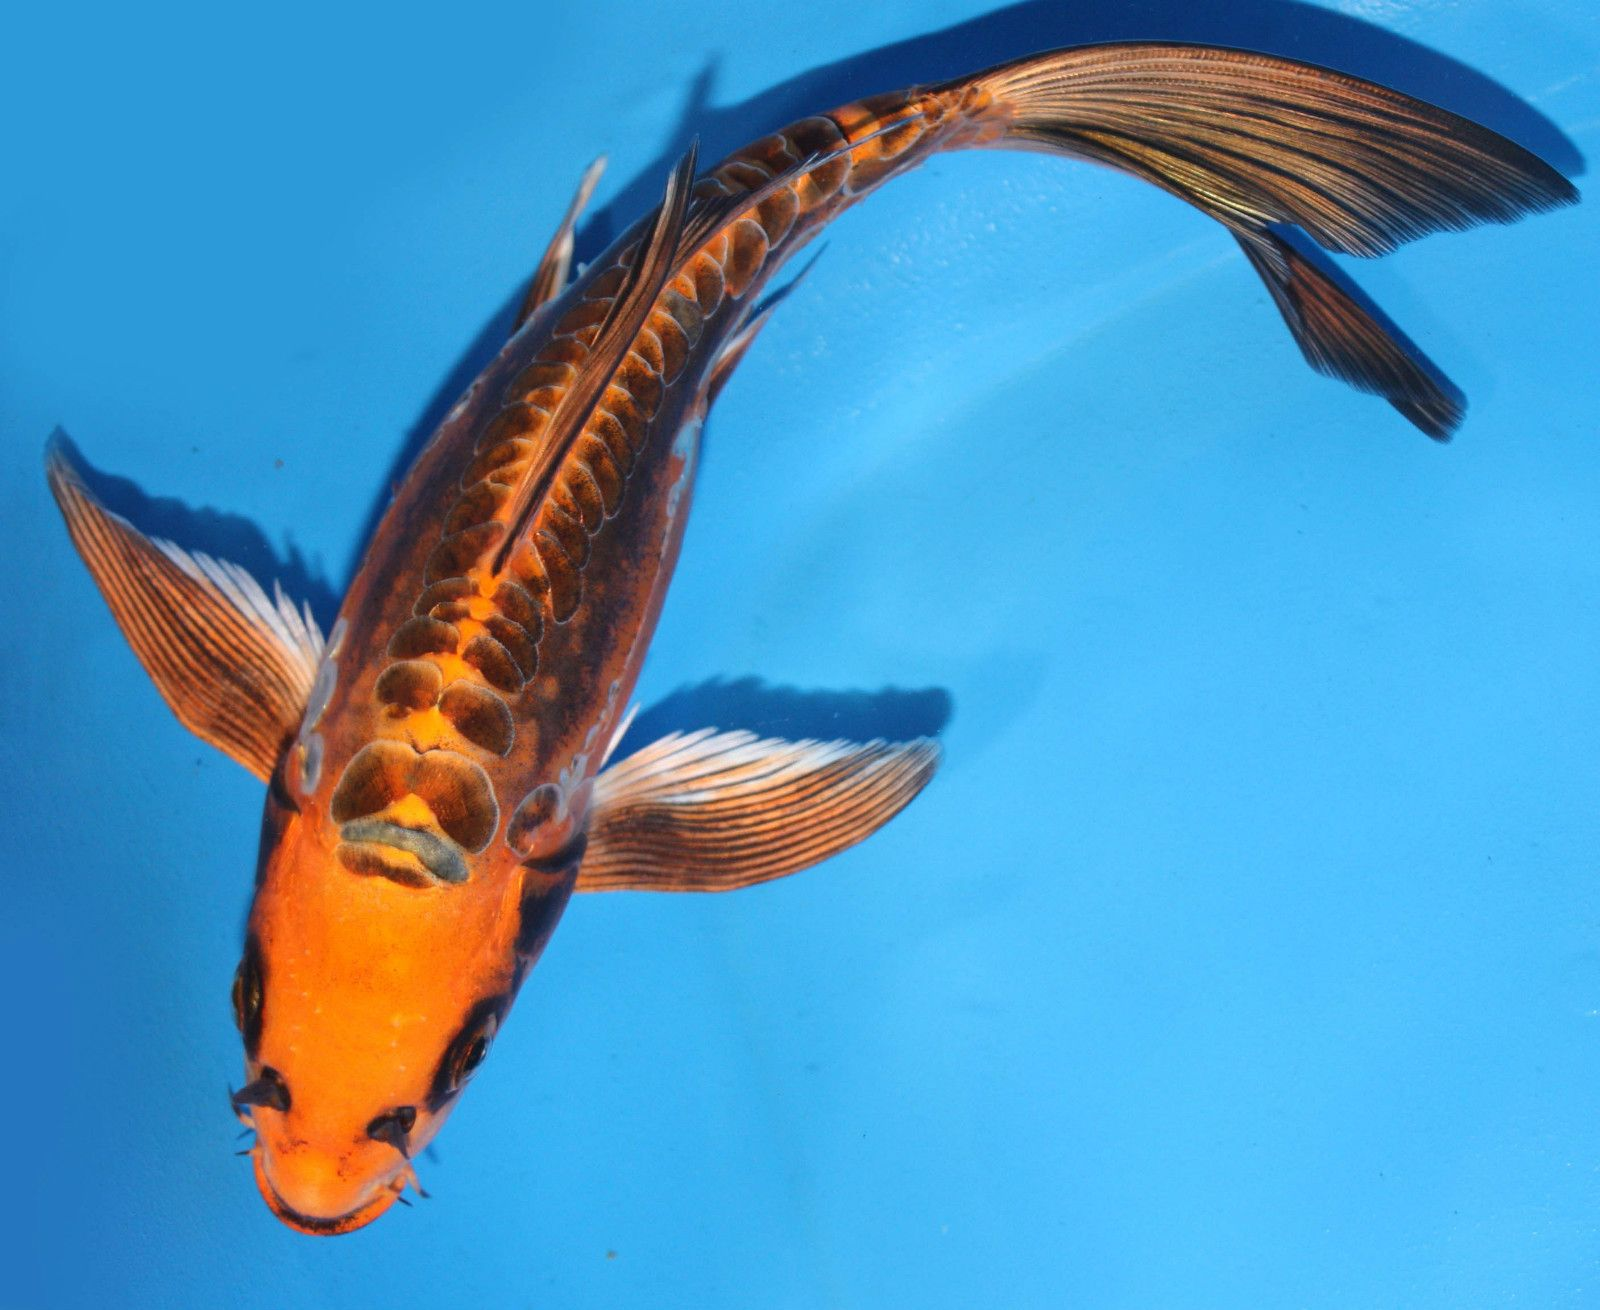 Doitsu kin matsuba ghost butterfly 9 10 live koi pond for Freshwater koi fish